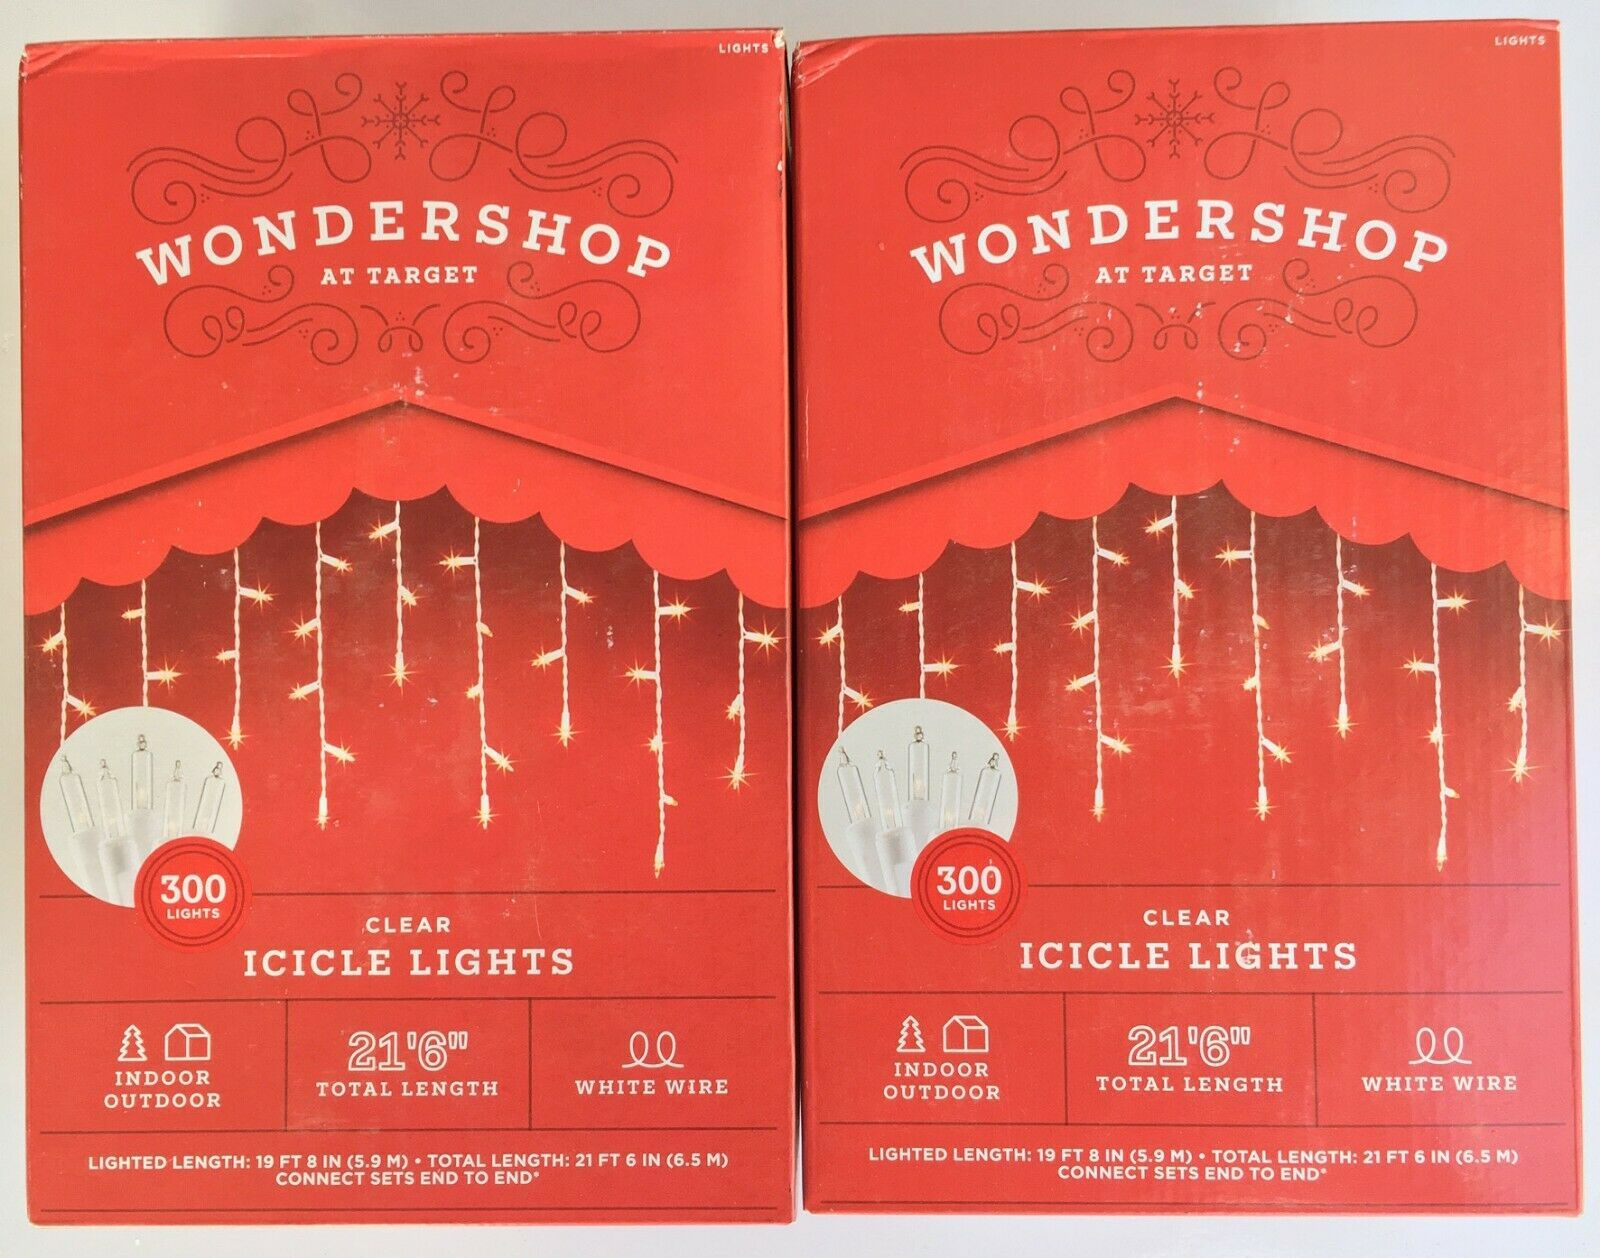 2X 300ct Christmas Incandescent Icicle Lights Clear with White Wire - Wondershop